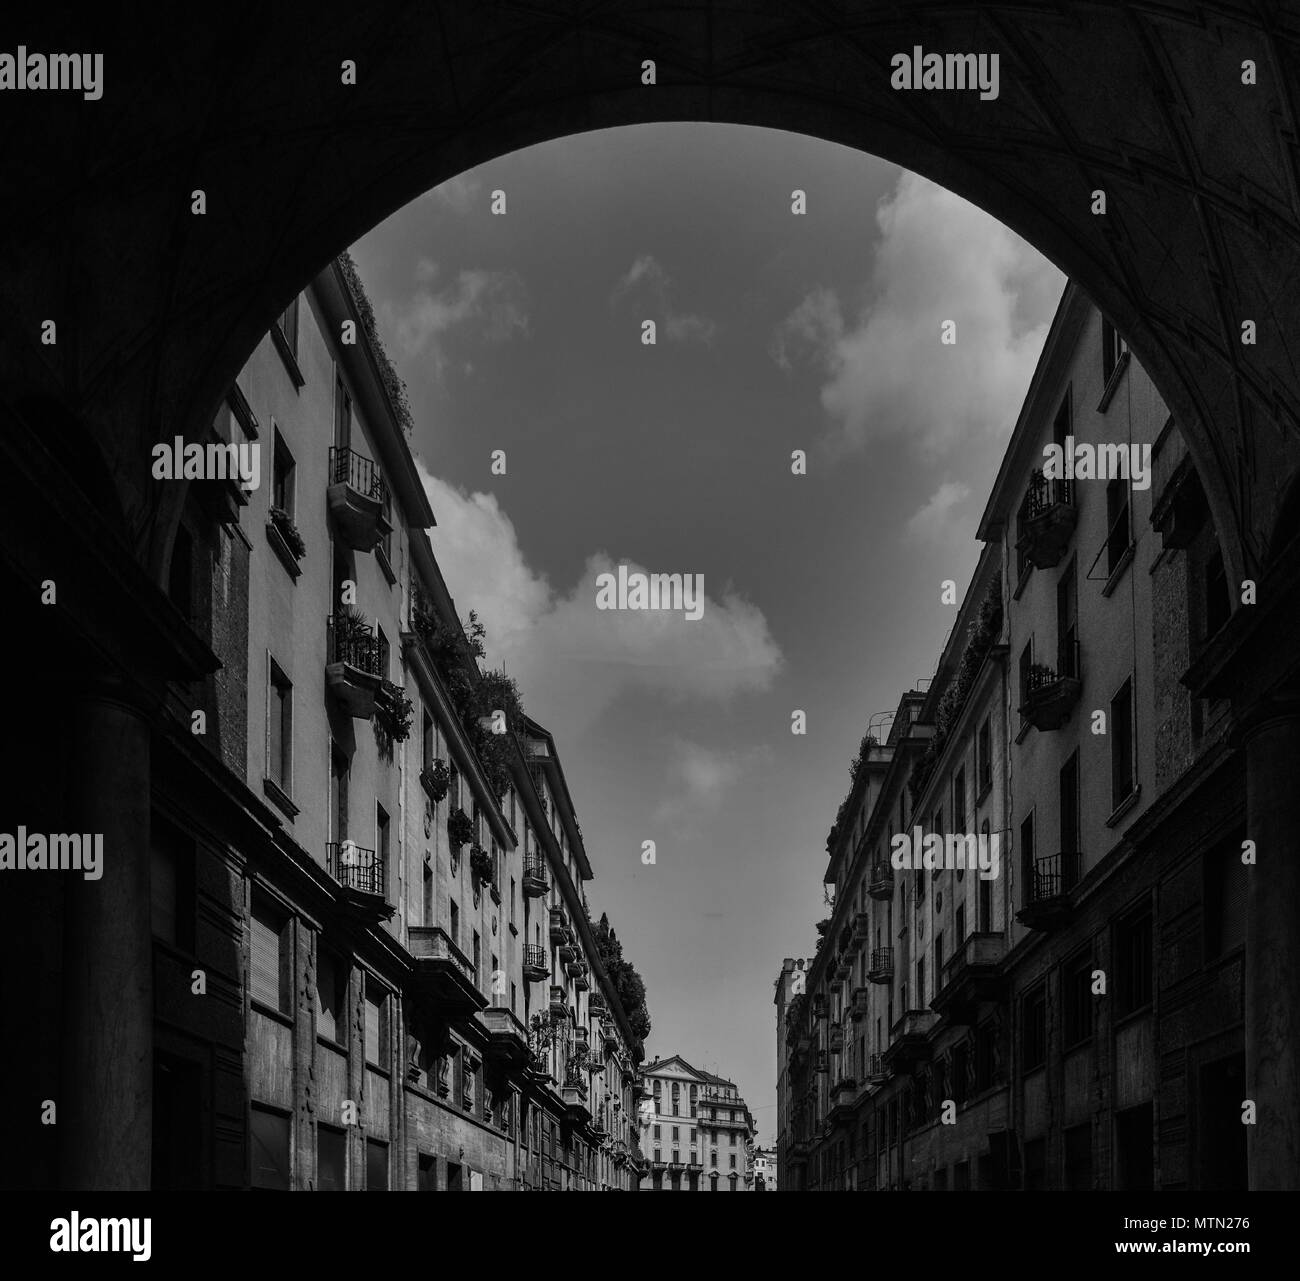 Impressive arch frame of traditional Milanese buildings on Via Tommaso Salvini in Milan's Porta Venezia district, Lombardy, Italy - Stock Image